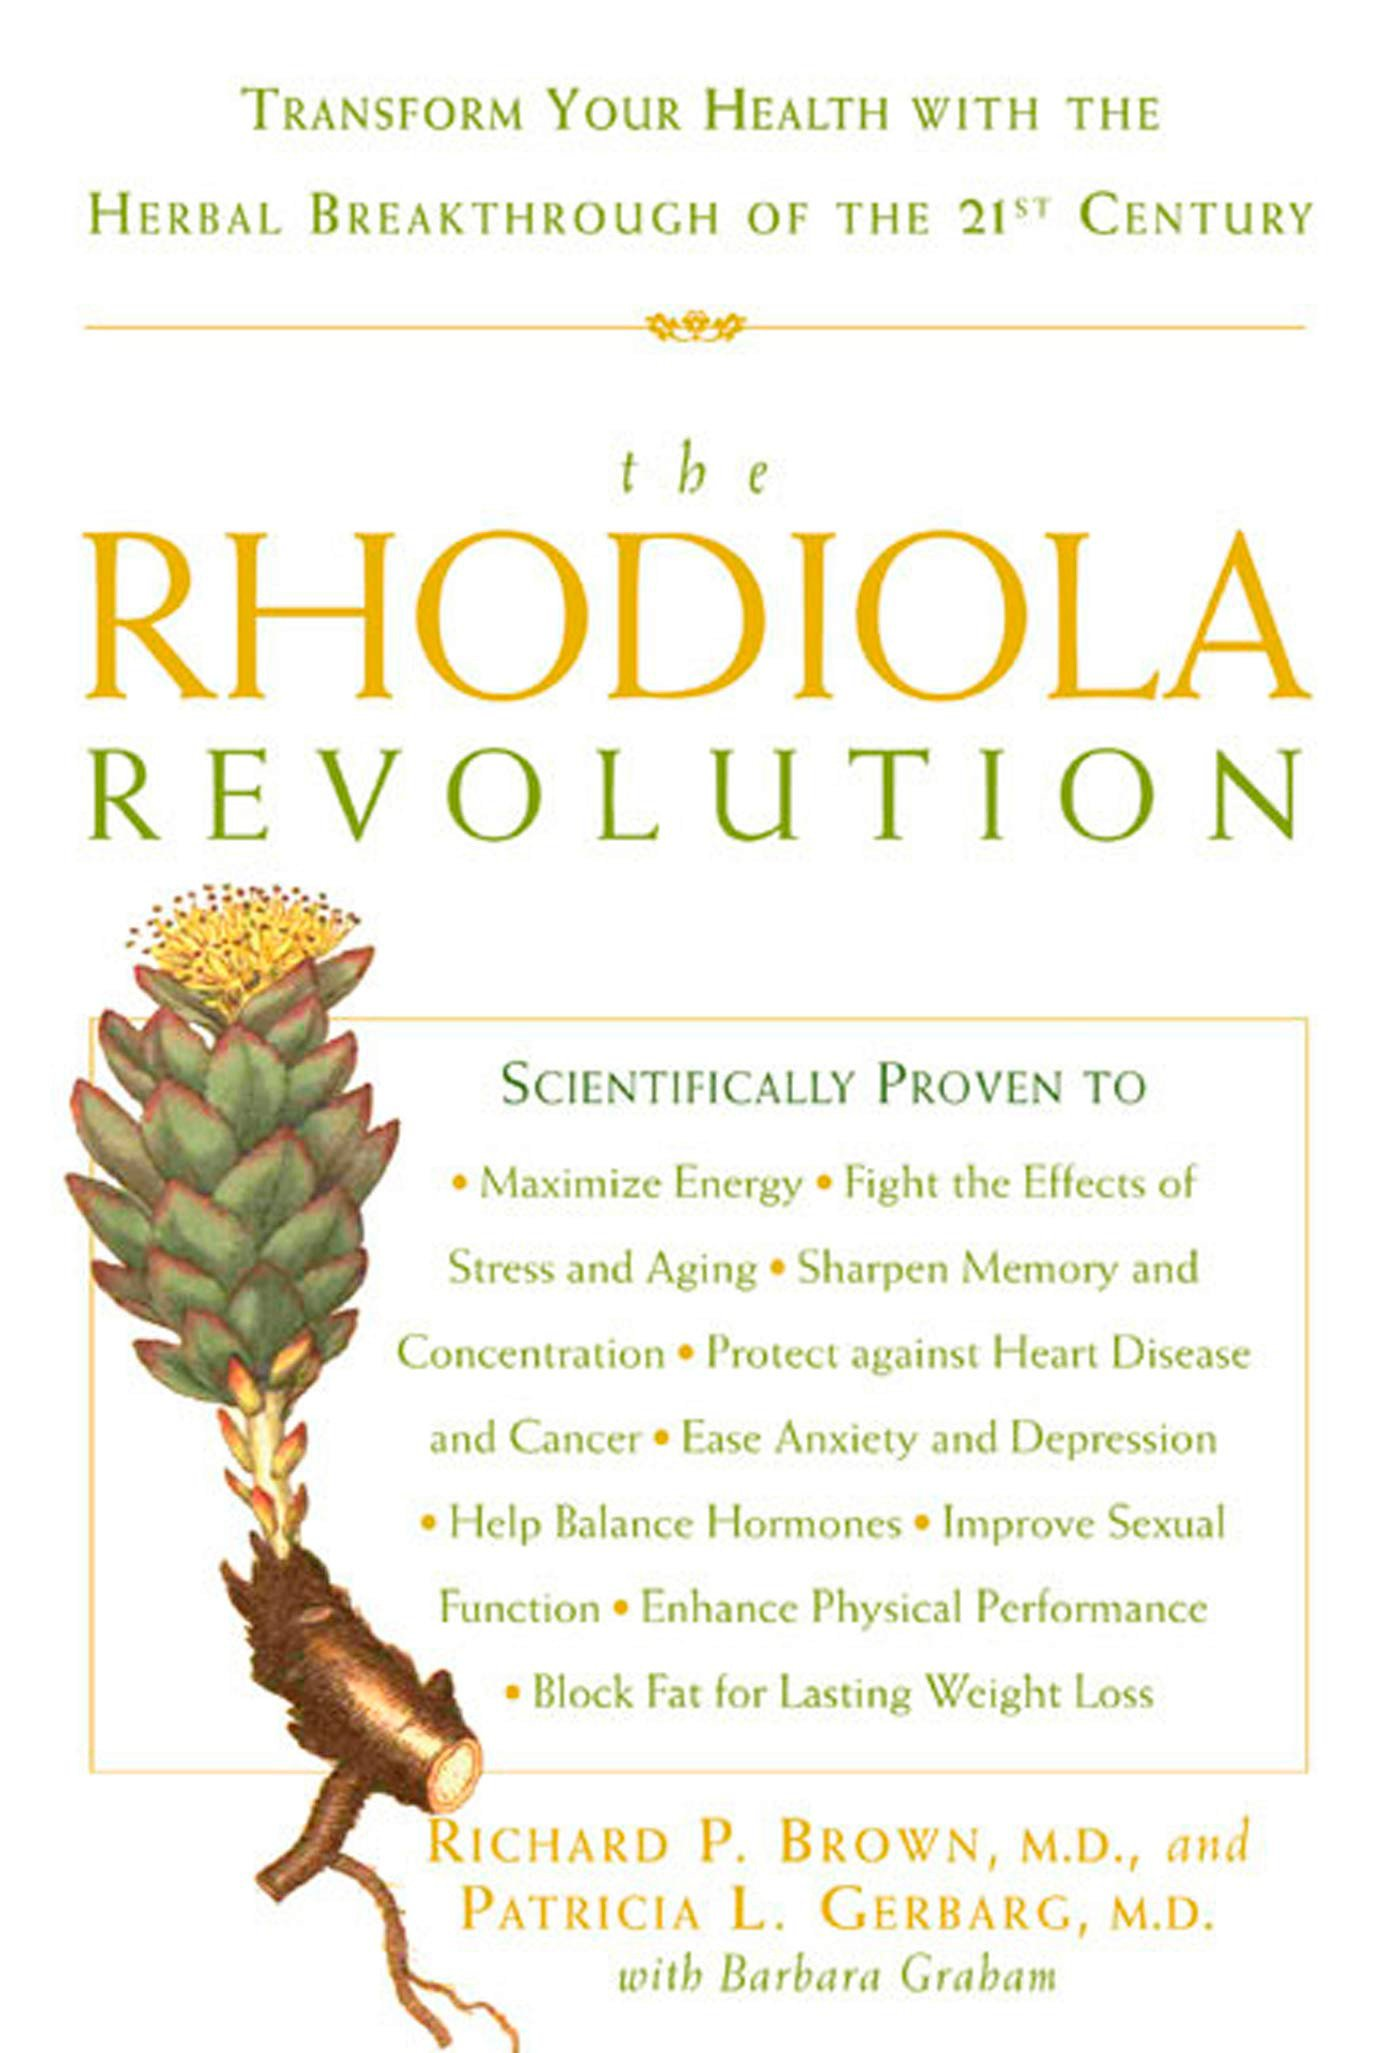 The Rhodiola Revolution Transform Your Health With The Herbal